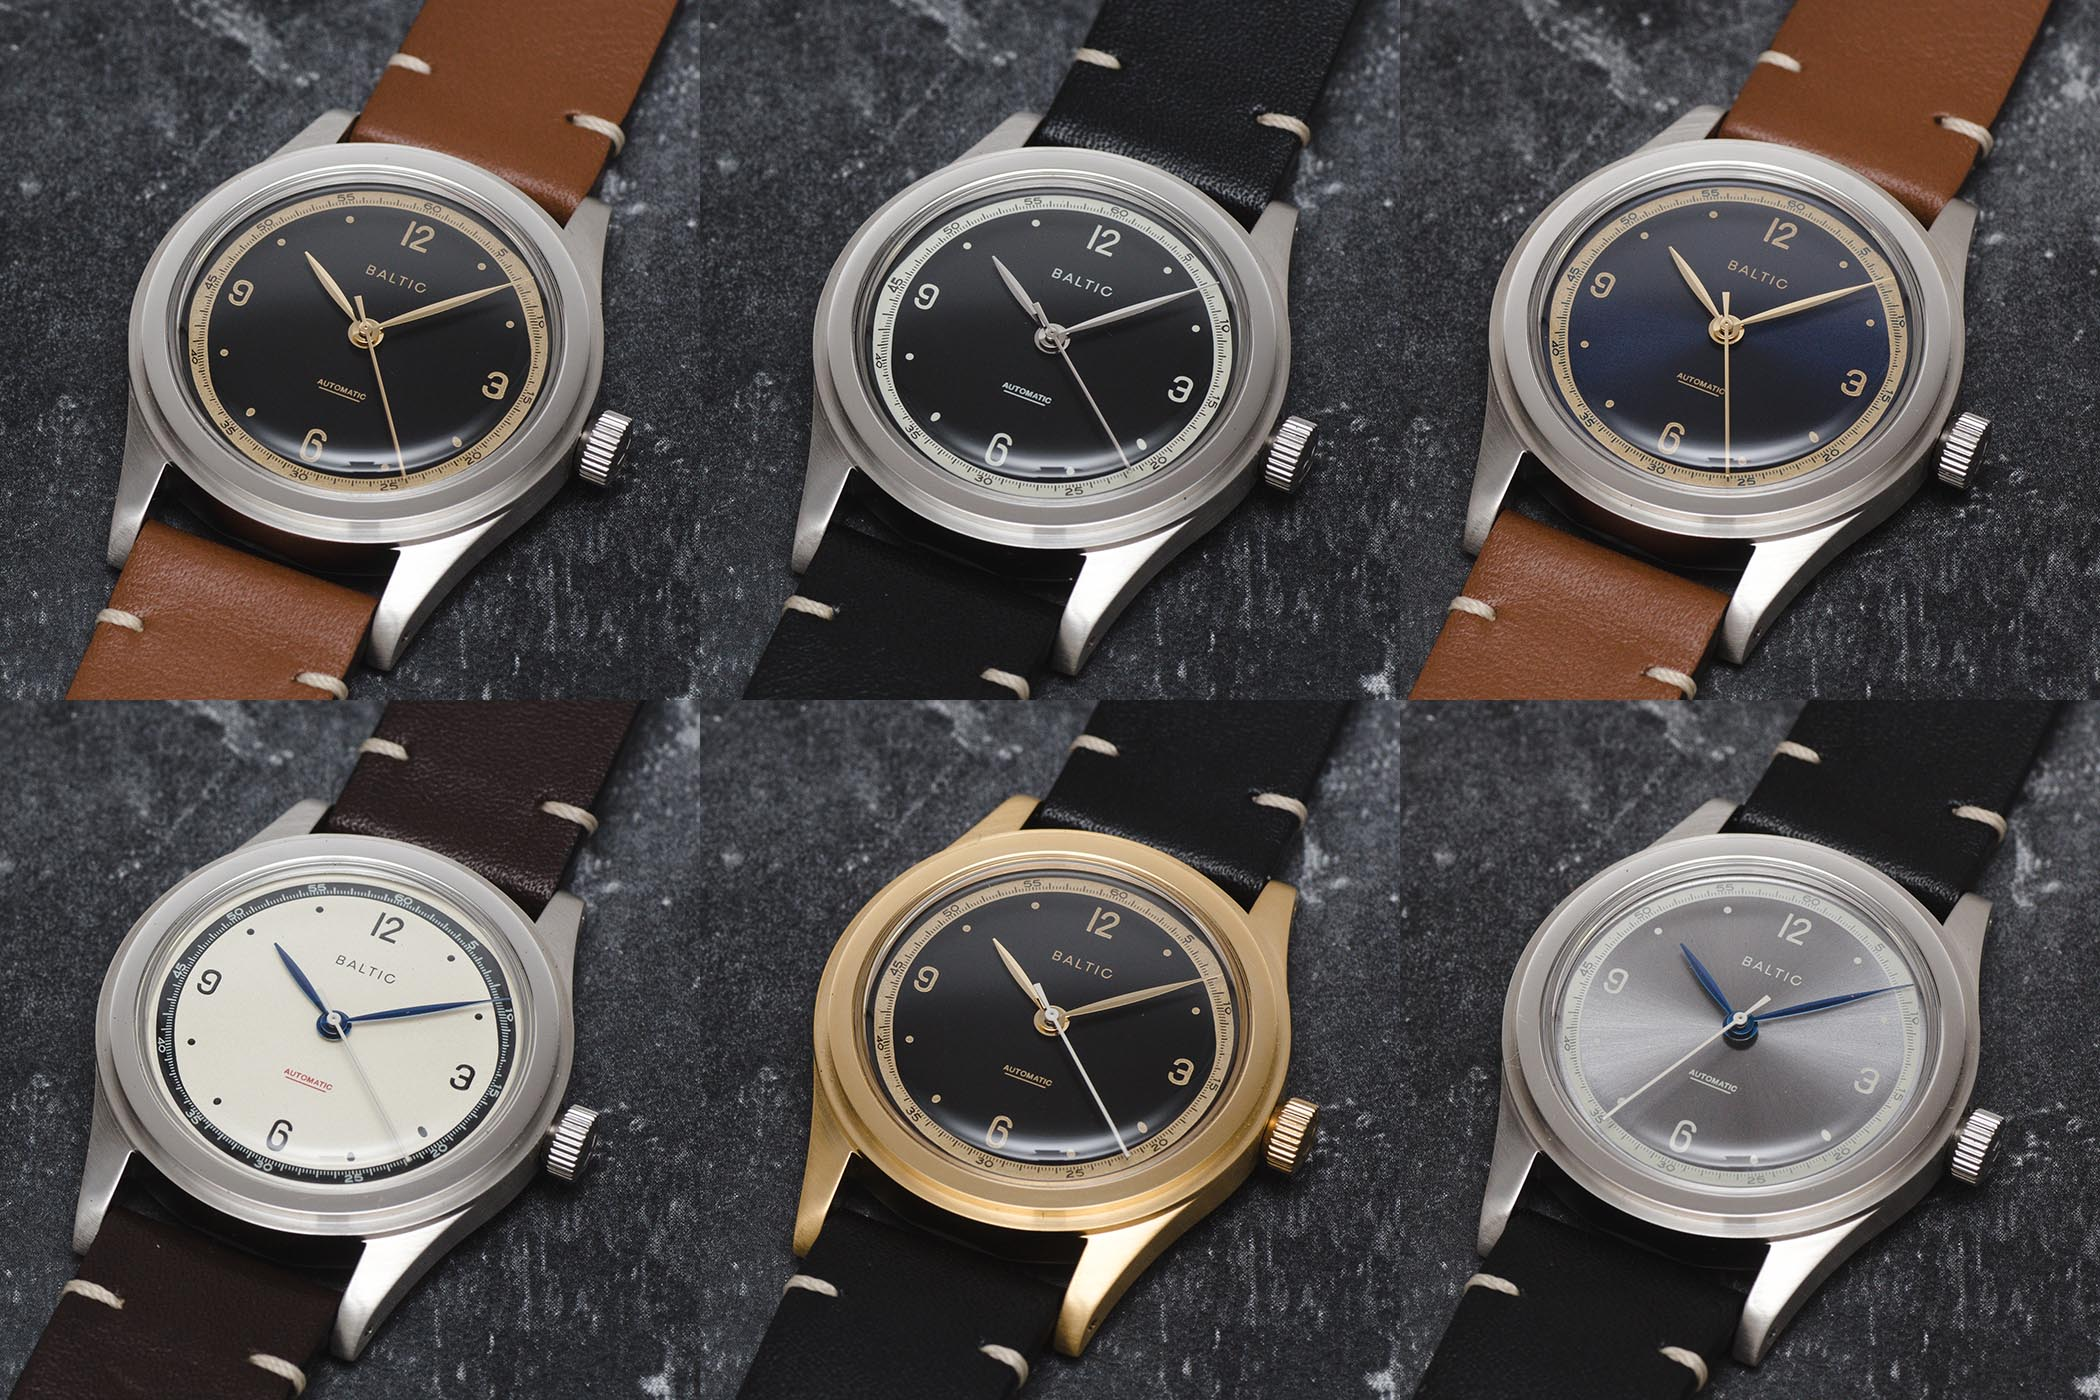 date vintage x brown strap clock quartz case casual new wrist product business silver men automatic agent style dial watch white watches leather display